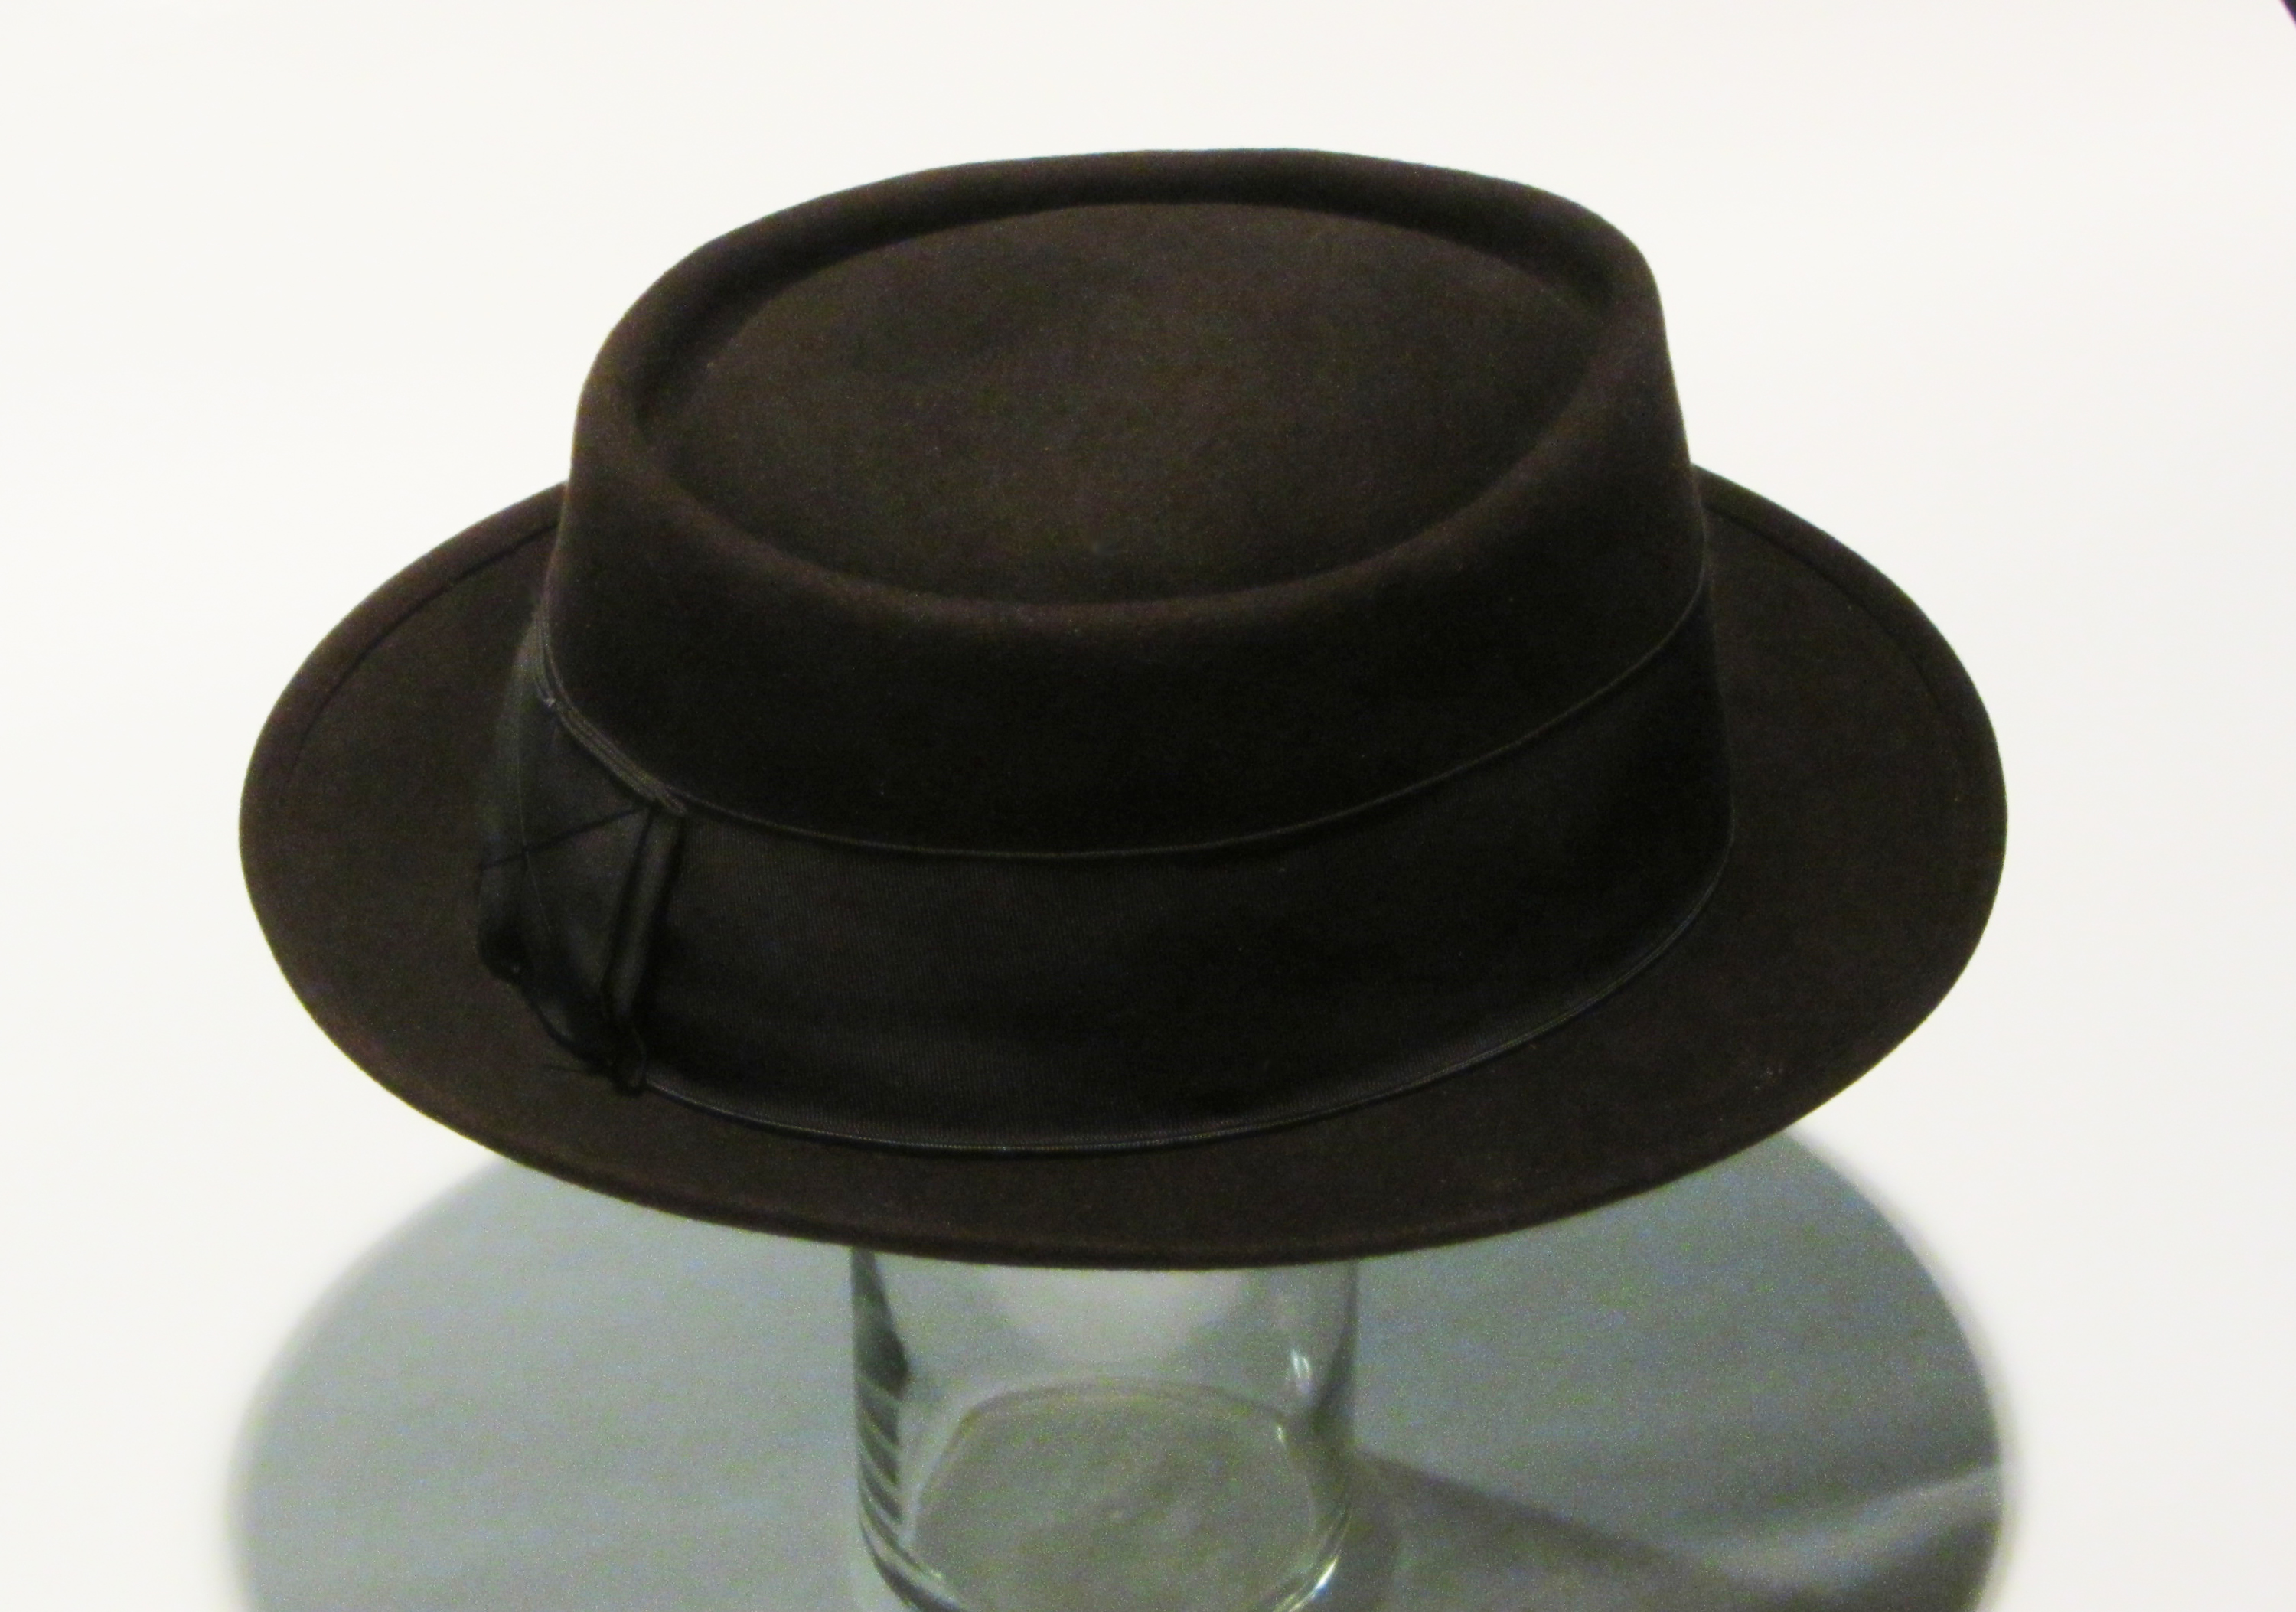 caae74a538675 Pork pie hat - Wikipedia